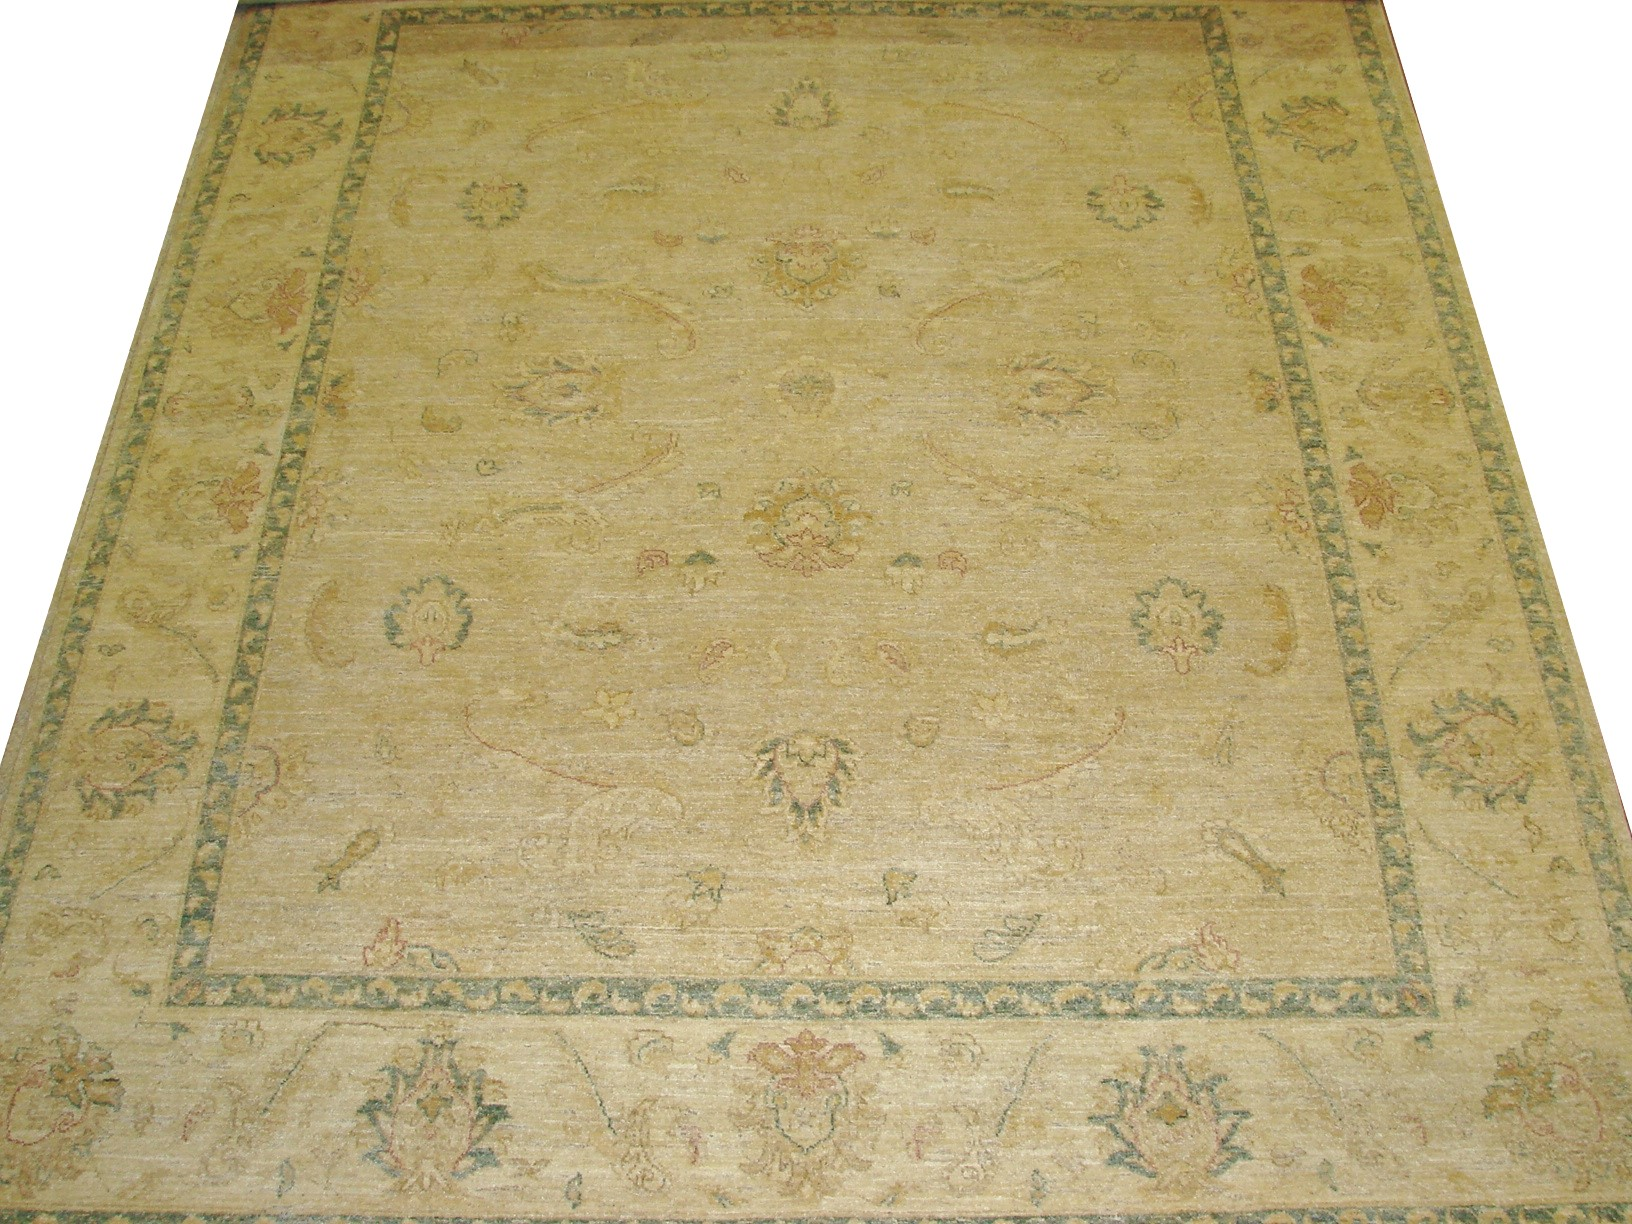 8x10 Peshawar Hand Knotted Wool Area Rug - MR13266